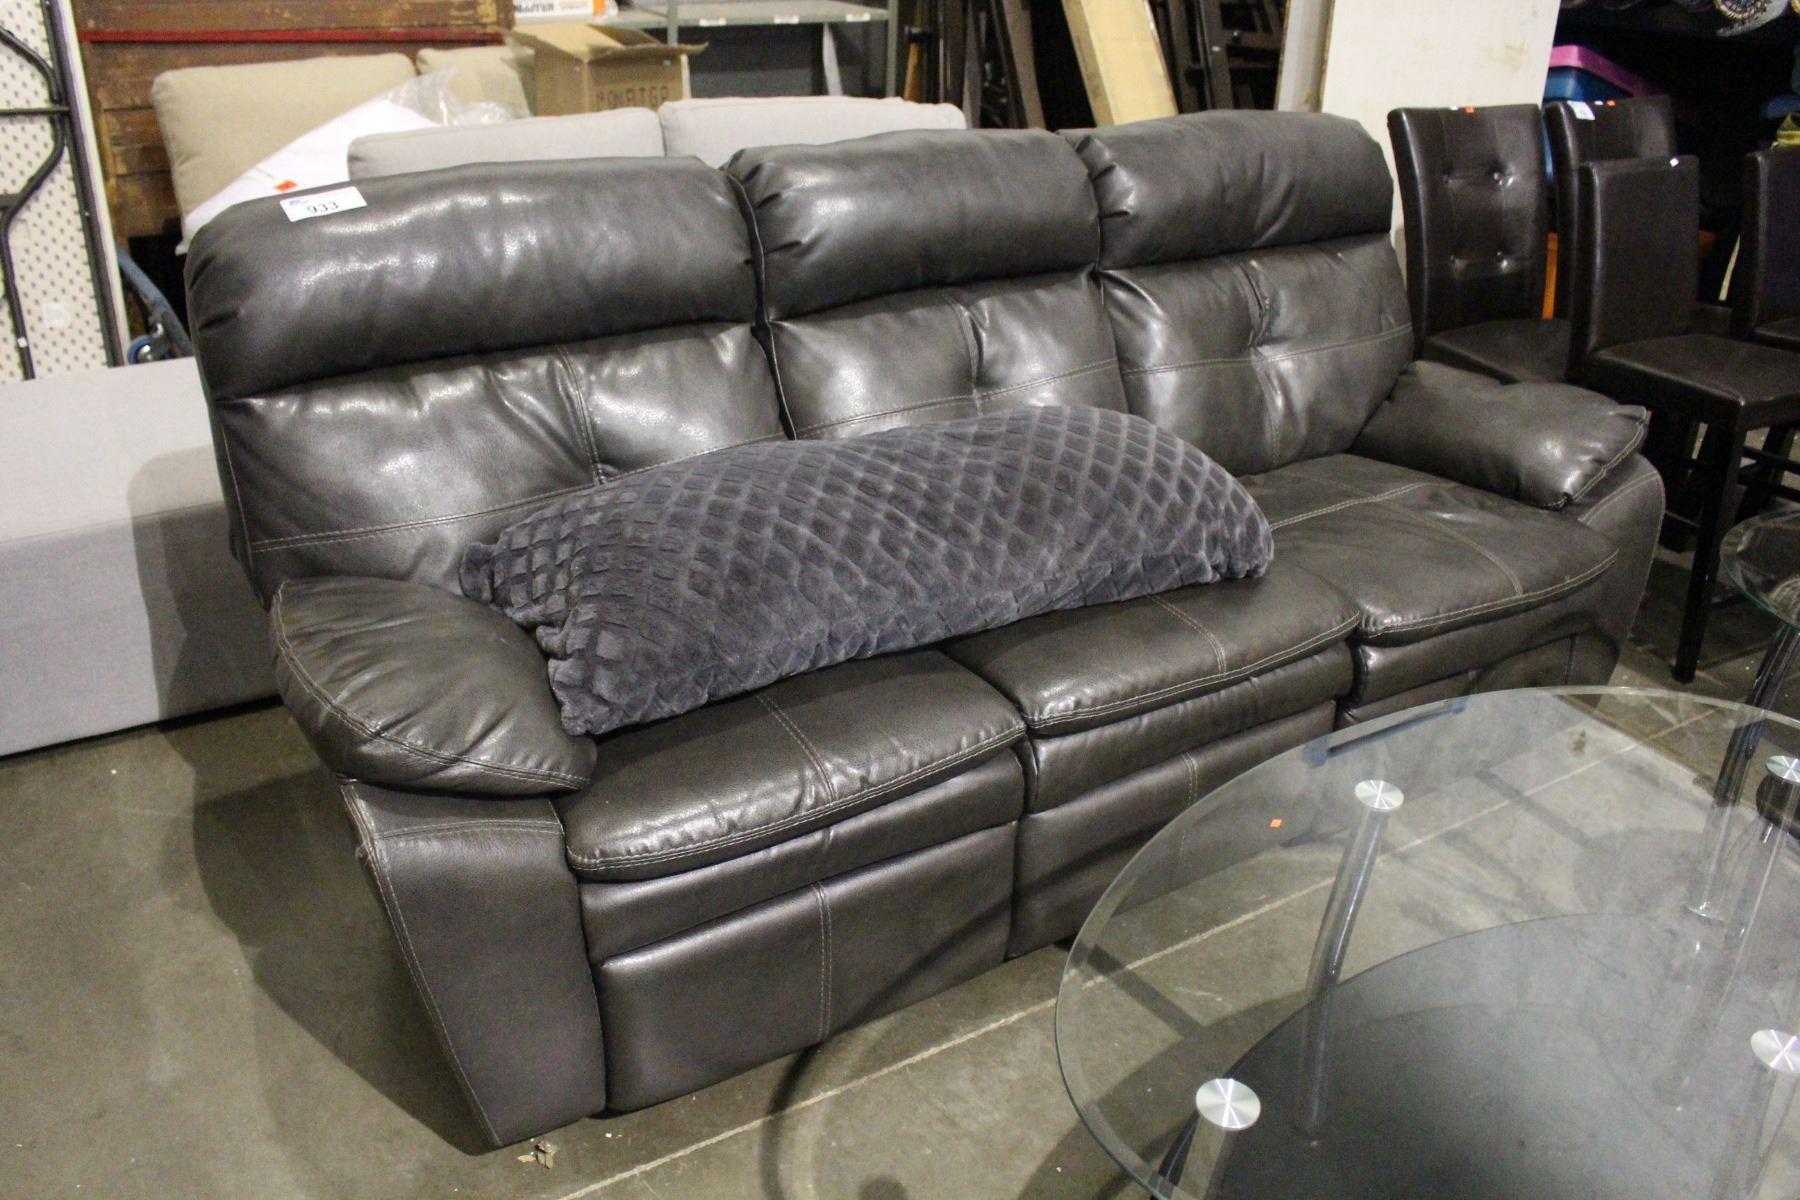 Leather reclining sofa with throw cushion Leather sofa throws